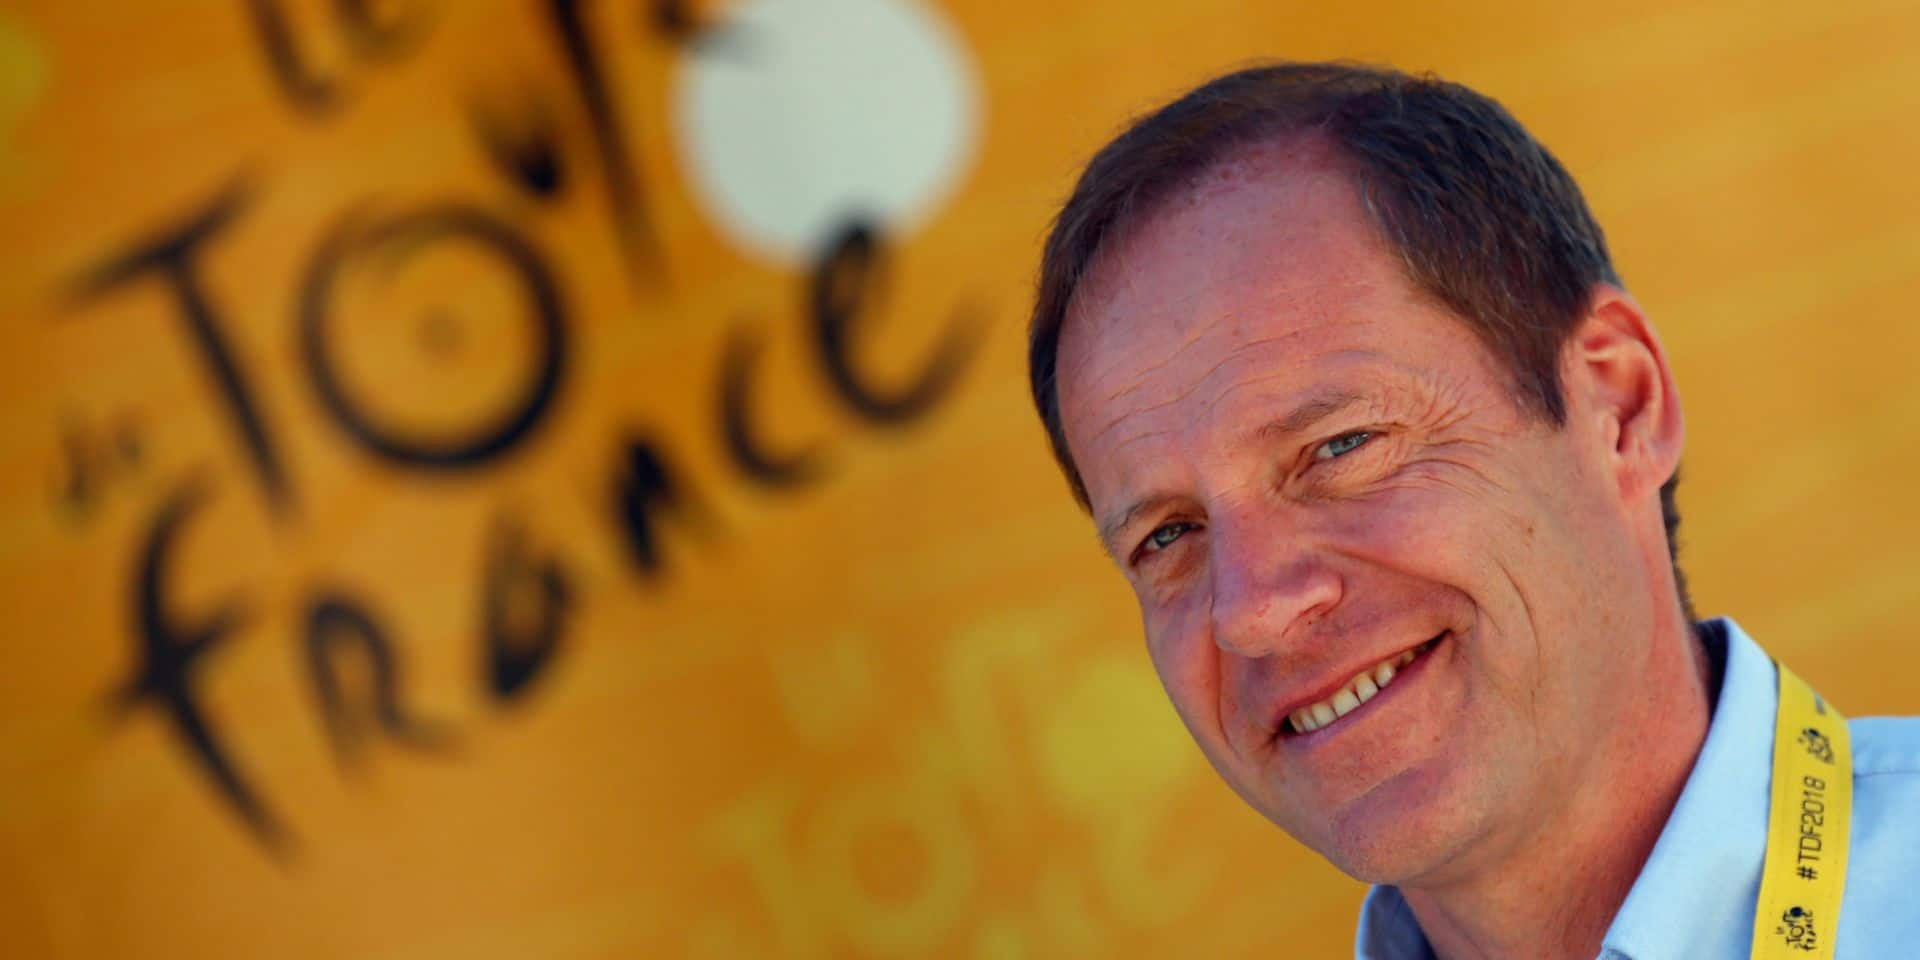 Tour de France director Christian Prudhomme poses before the start of the twelfth stage of the Tour de France cycling race over 175.5 kilometers (109 miles) with start in Bourg-Saint-Maurice Les Arcs and Alpe d'Huez, France, Thursday, July 19, 2018. (AP Photo/Peter Dejong)